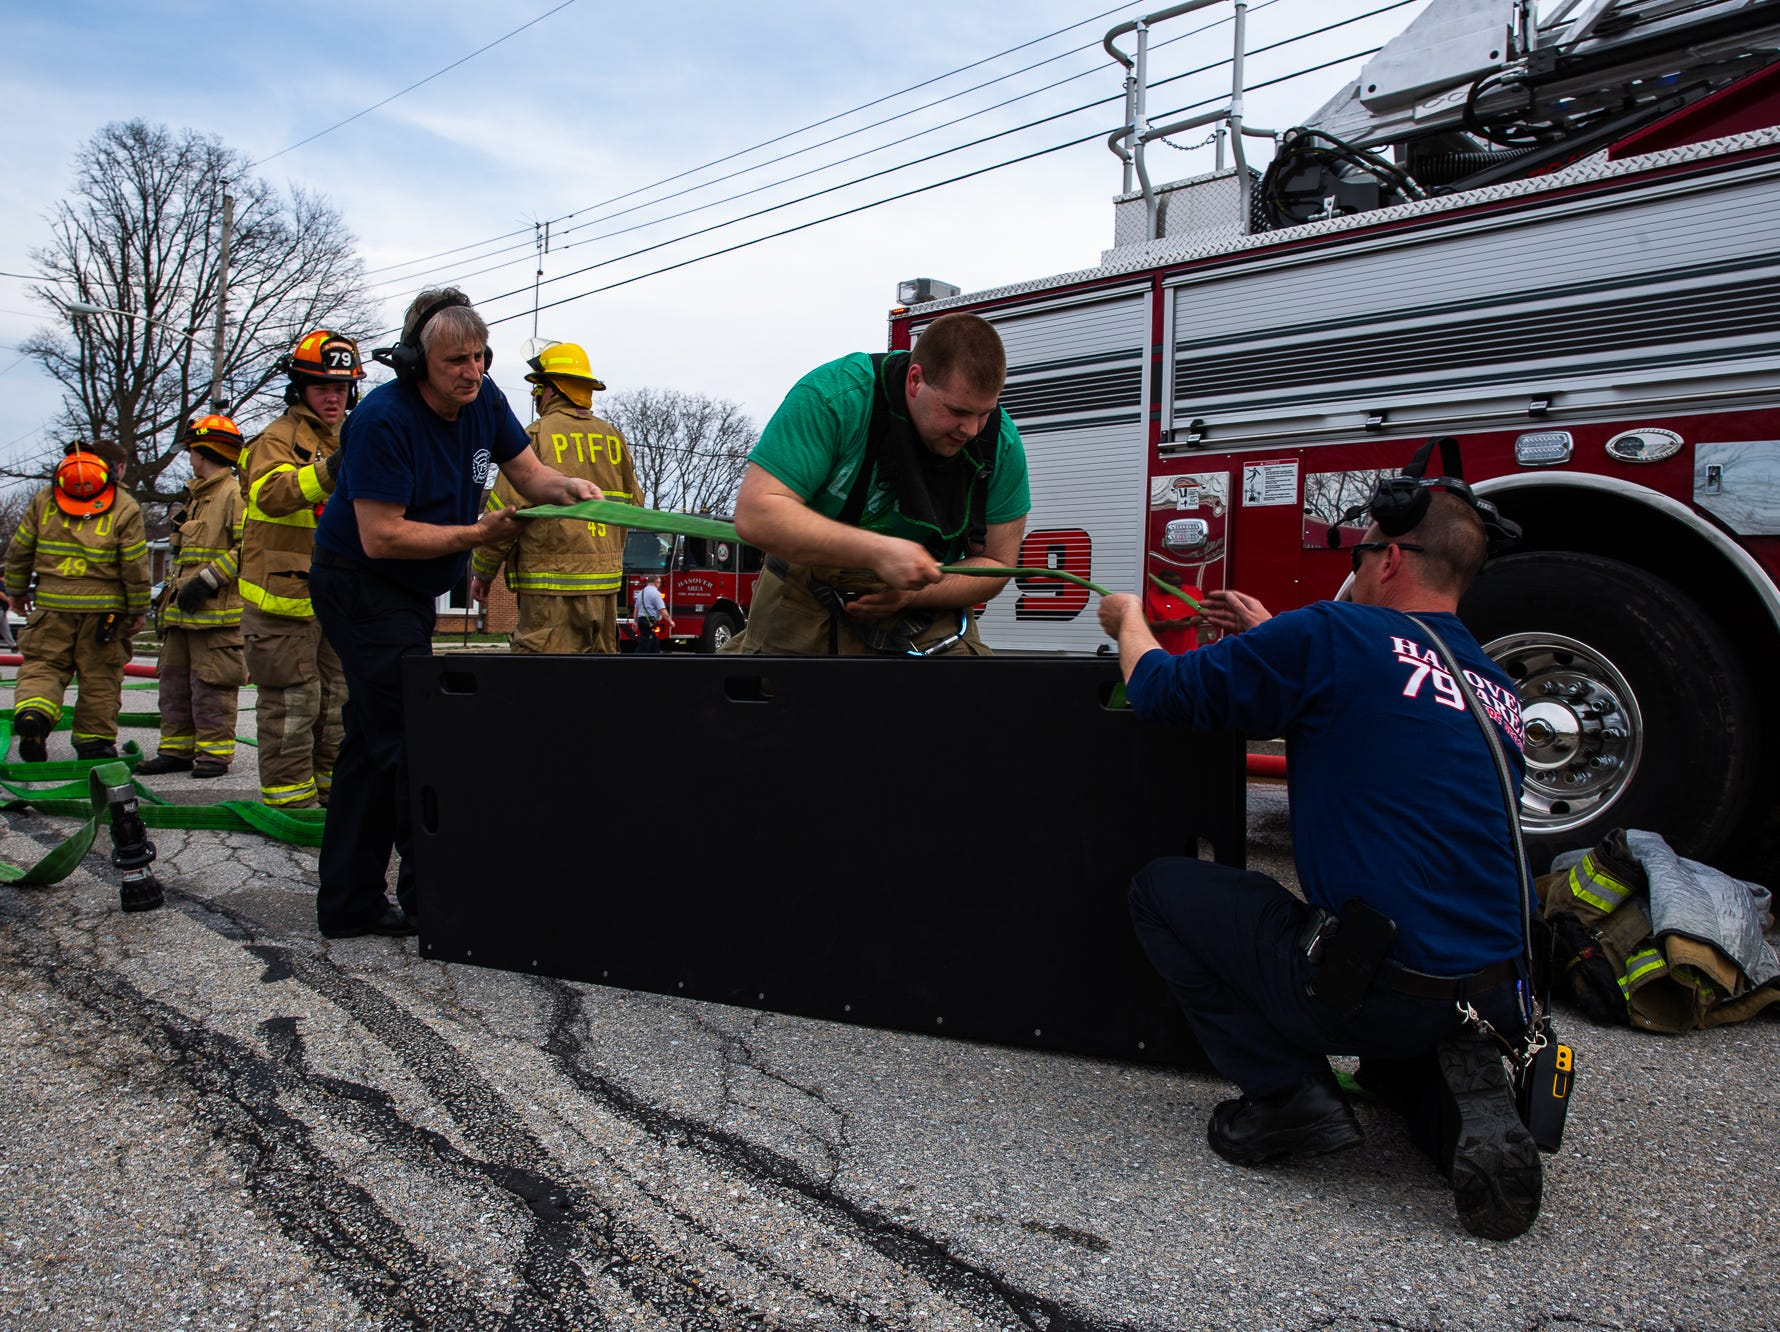 Firefighters reload hose at the scene of a house fire on the 100 block of Mumma Ave., Saturday, March 30, 2019, in Penn Township. No one was injured in the fire, which appears to have been an accidental fire in the kitchen, said Hanover Area Fire & Rescue Chief Tony Clousher.